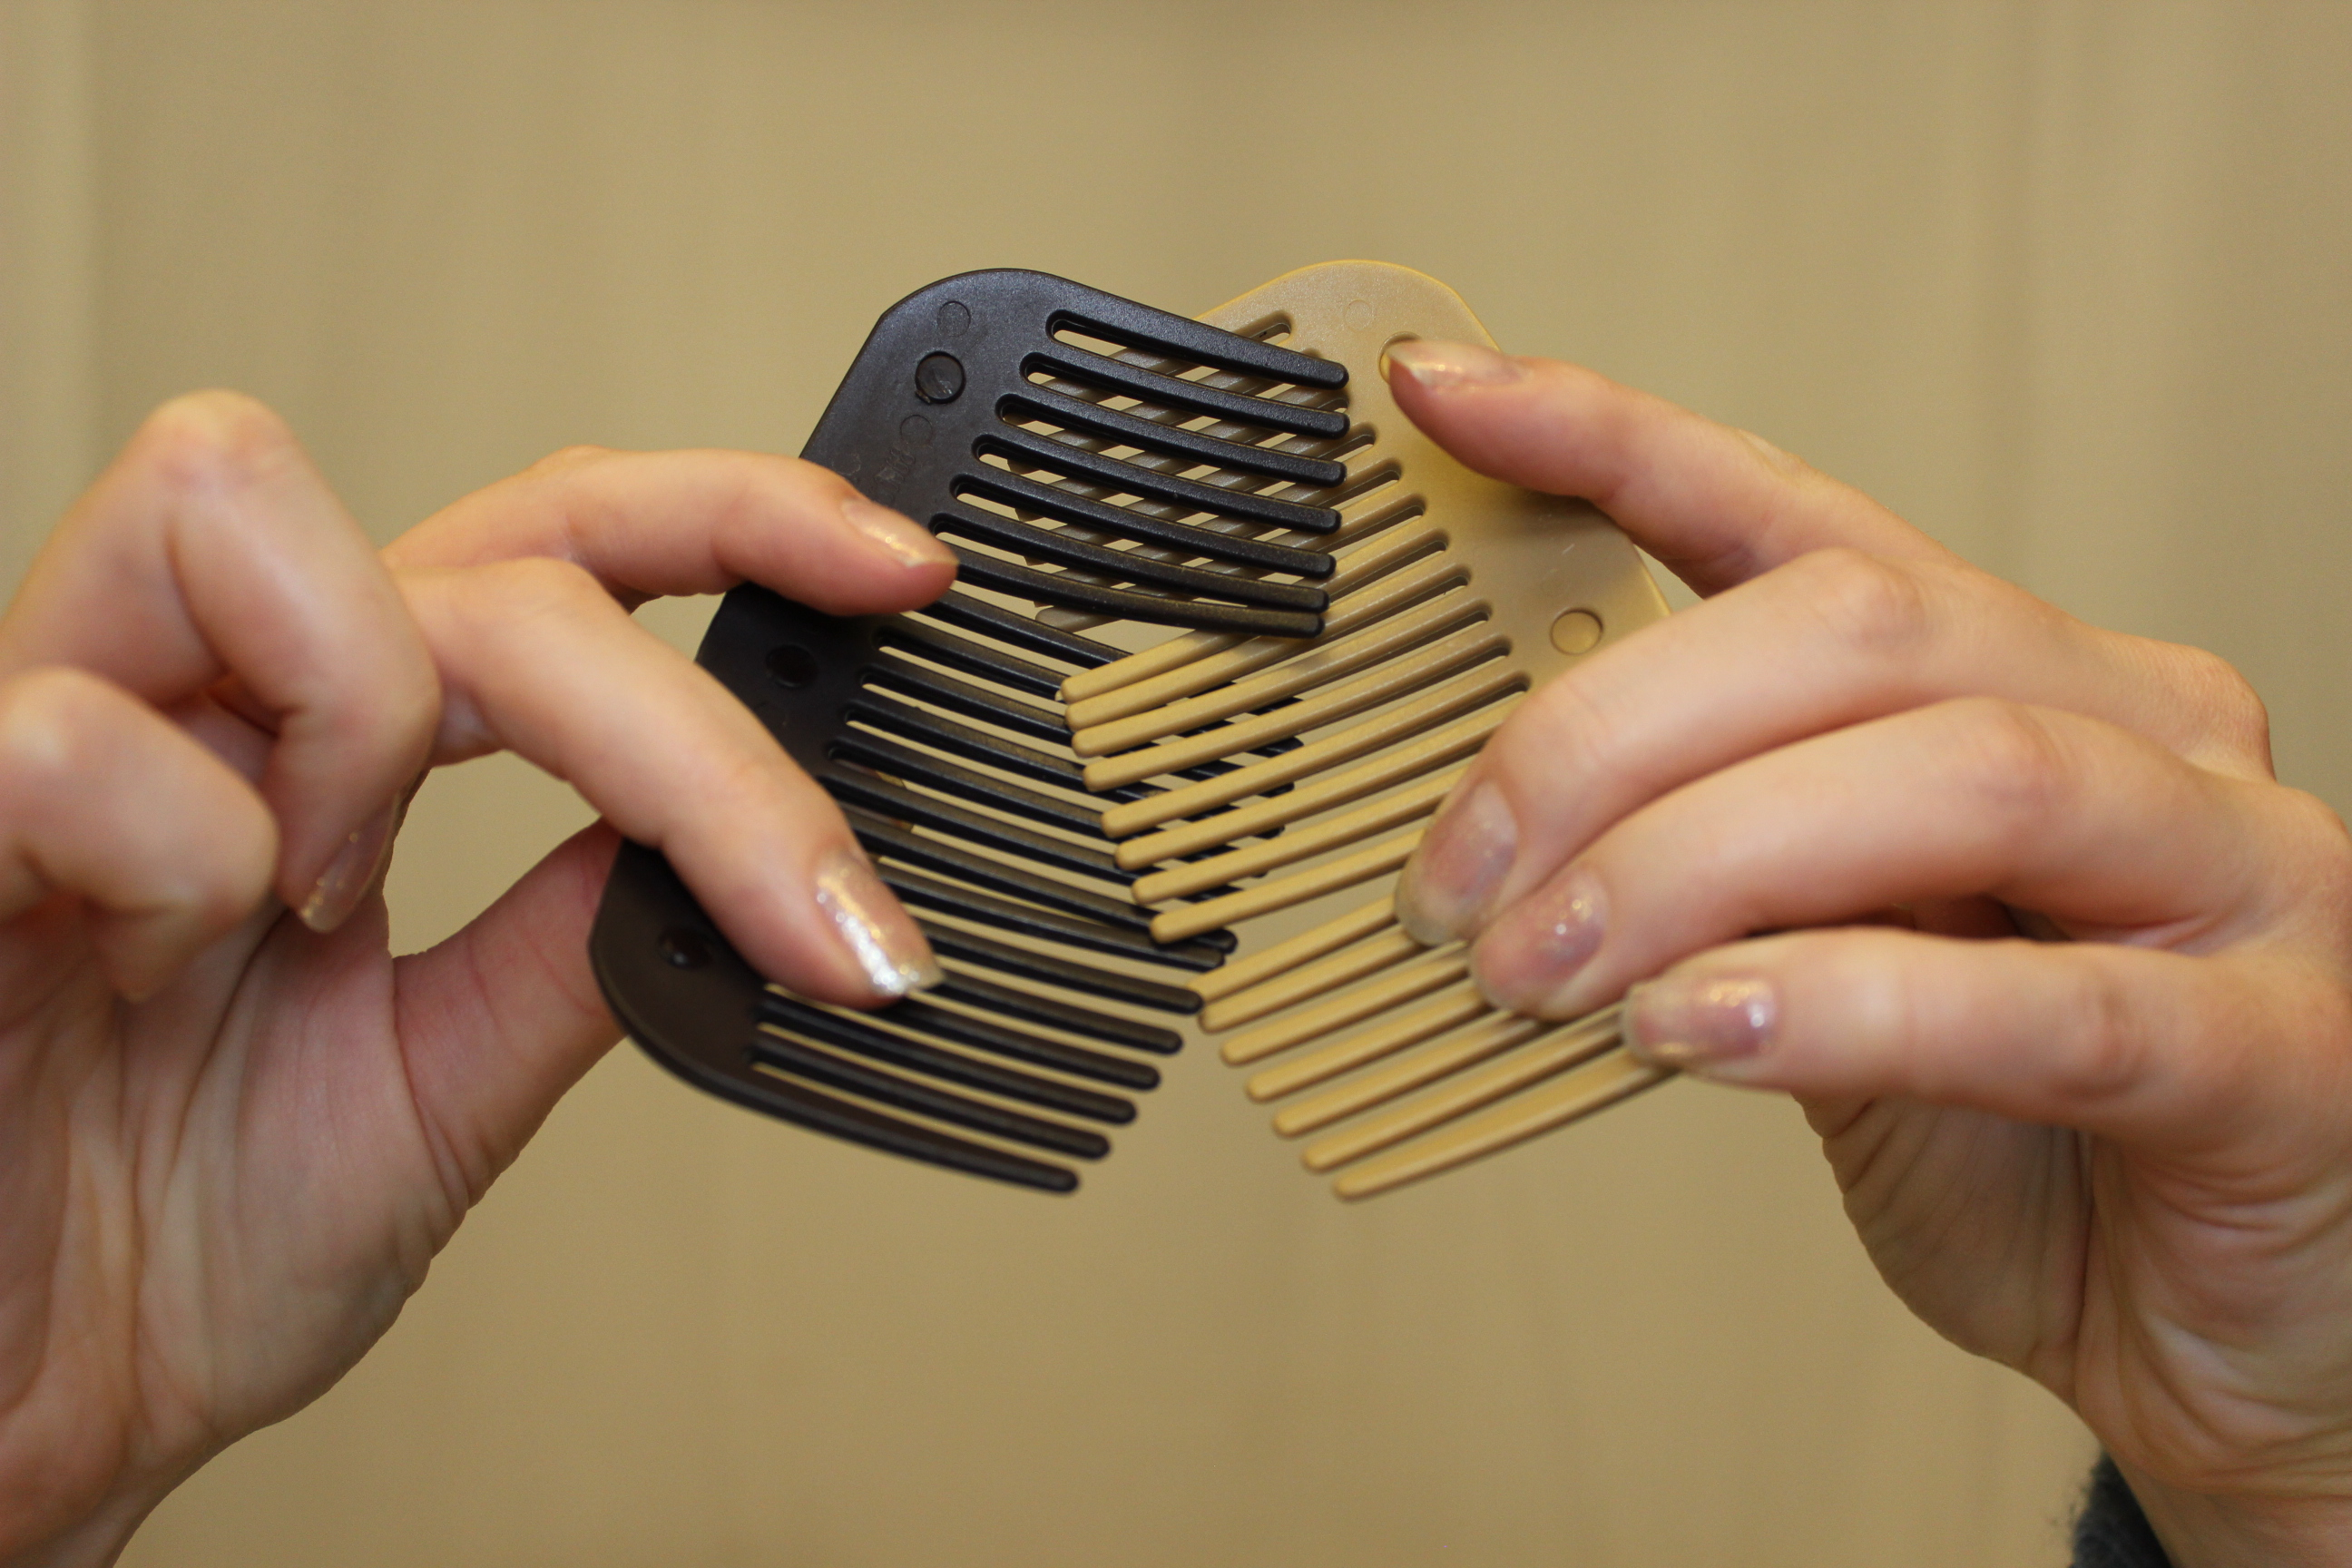 How to interlock the combs 2